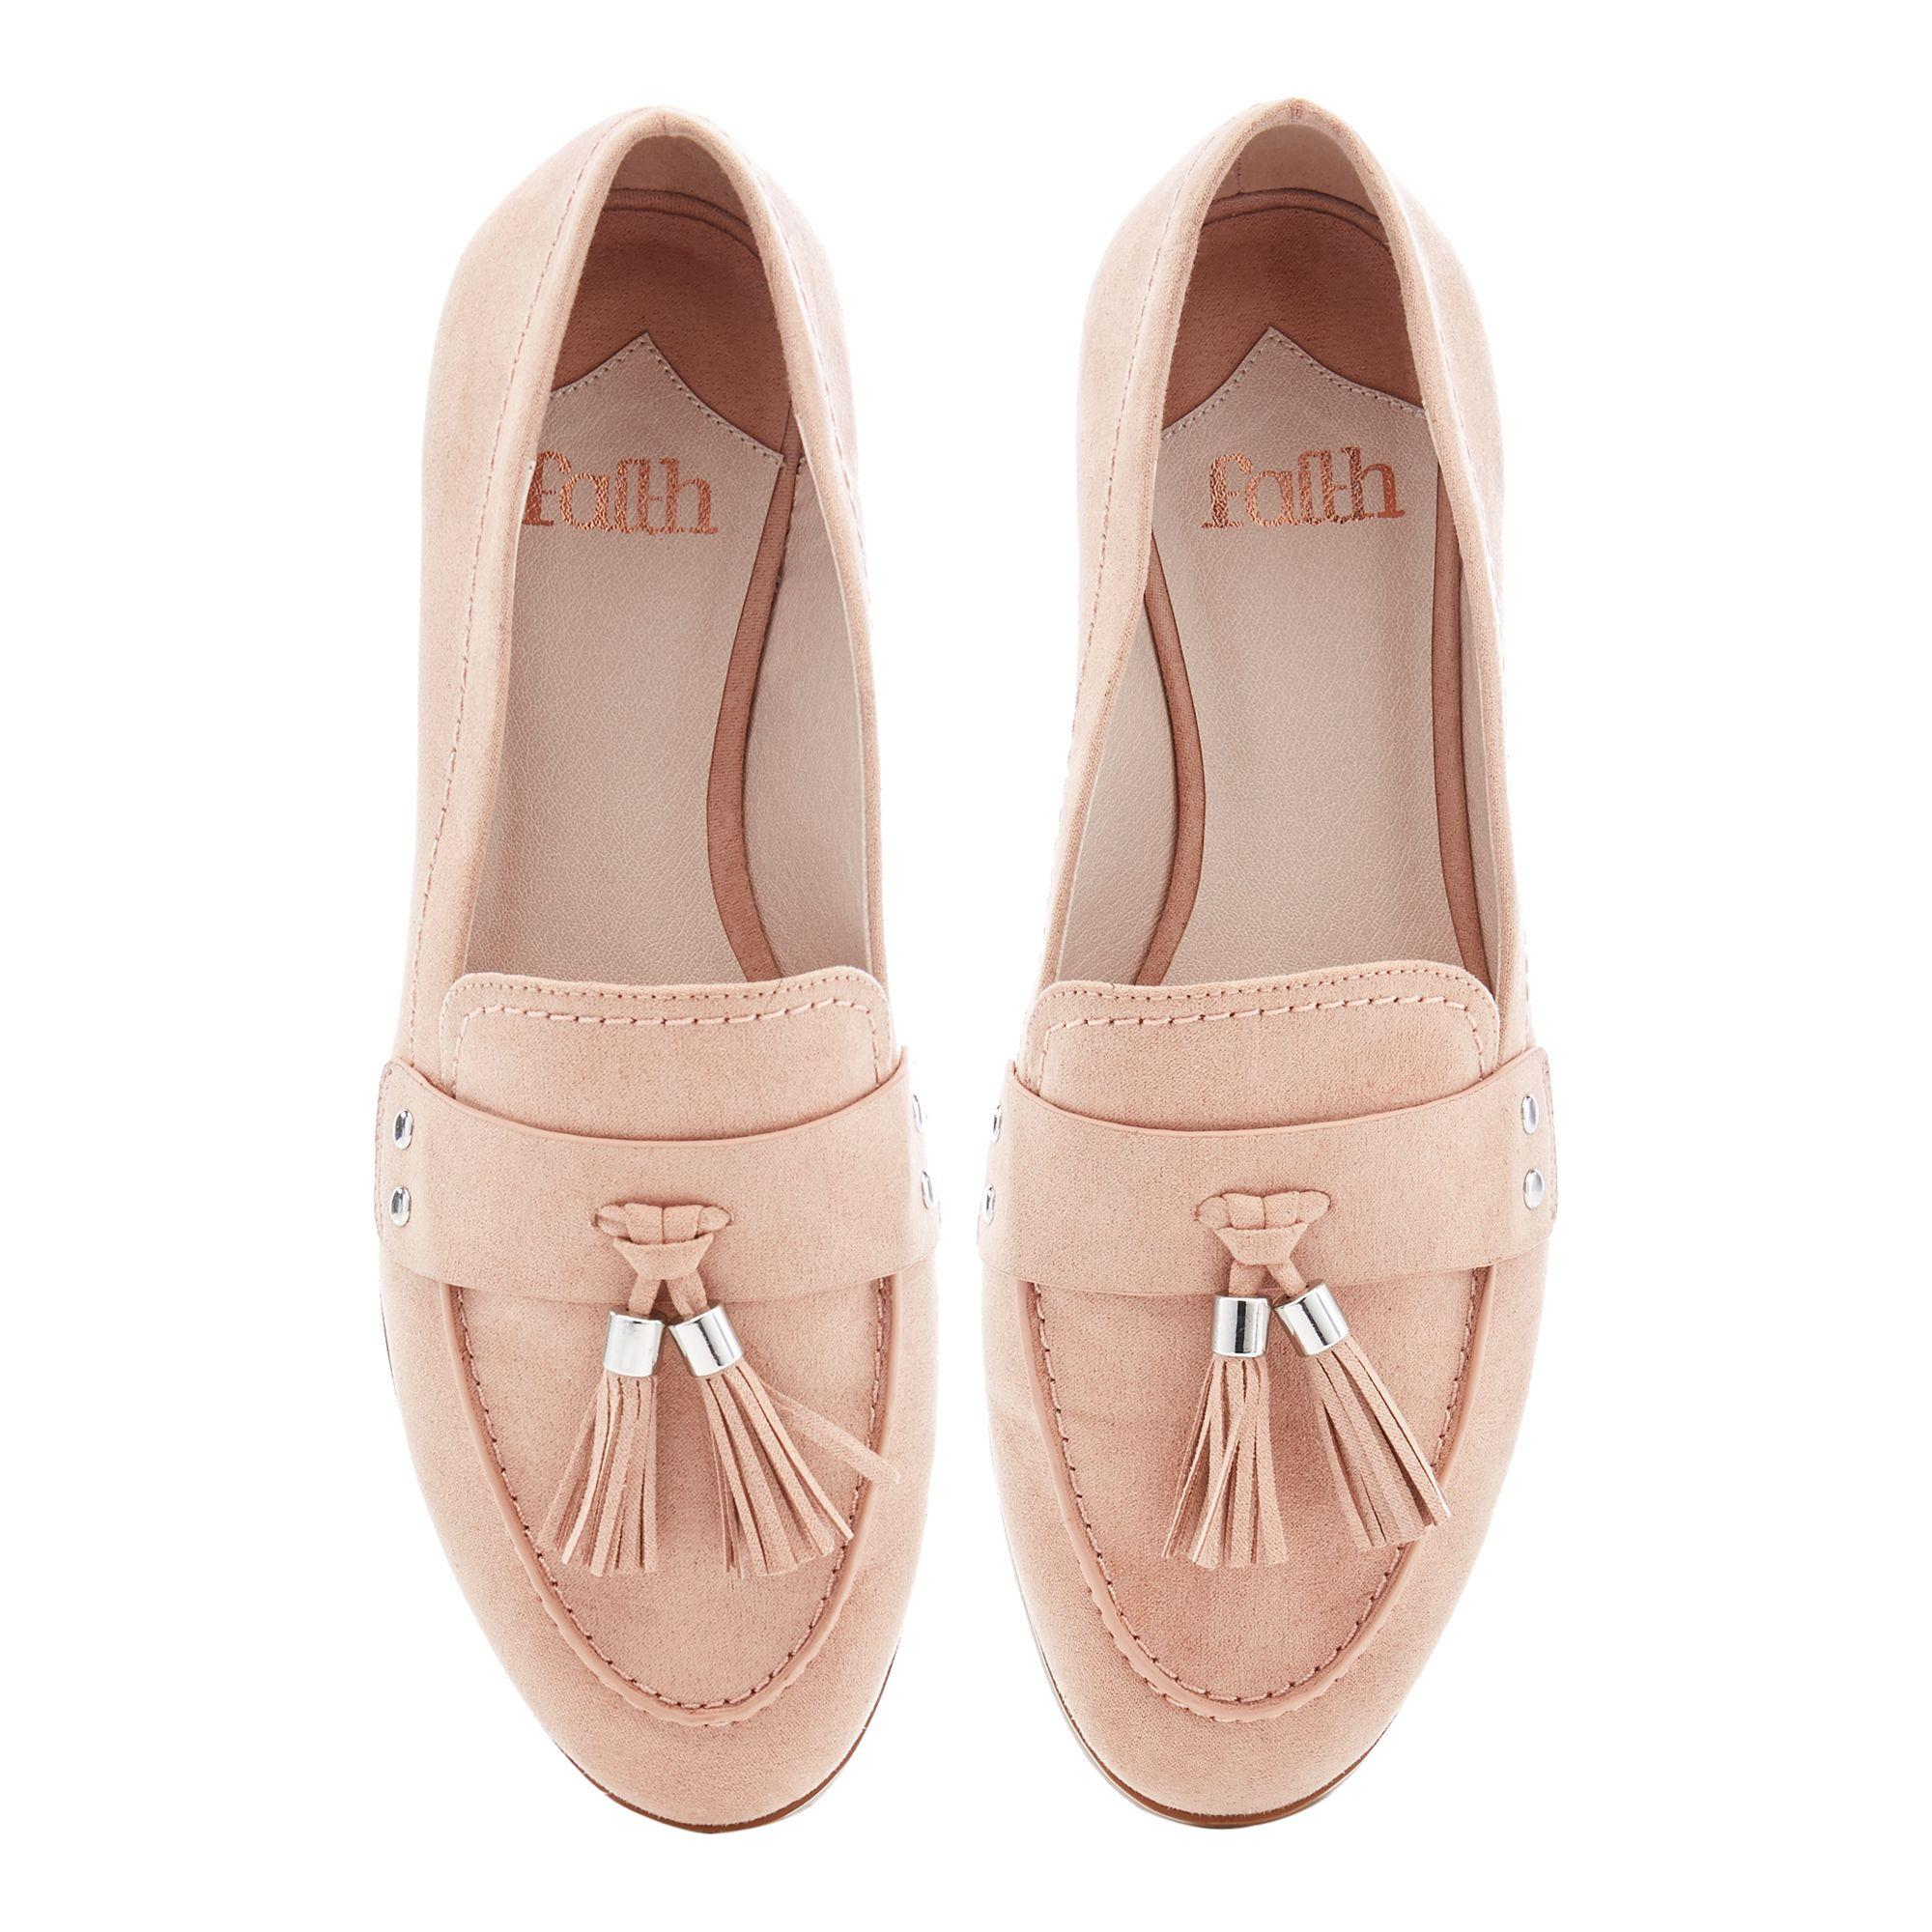 248a3491b Faith Natural Suedette Tassel 'amore' Flat Loafers. View fullscreen